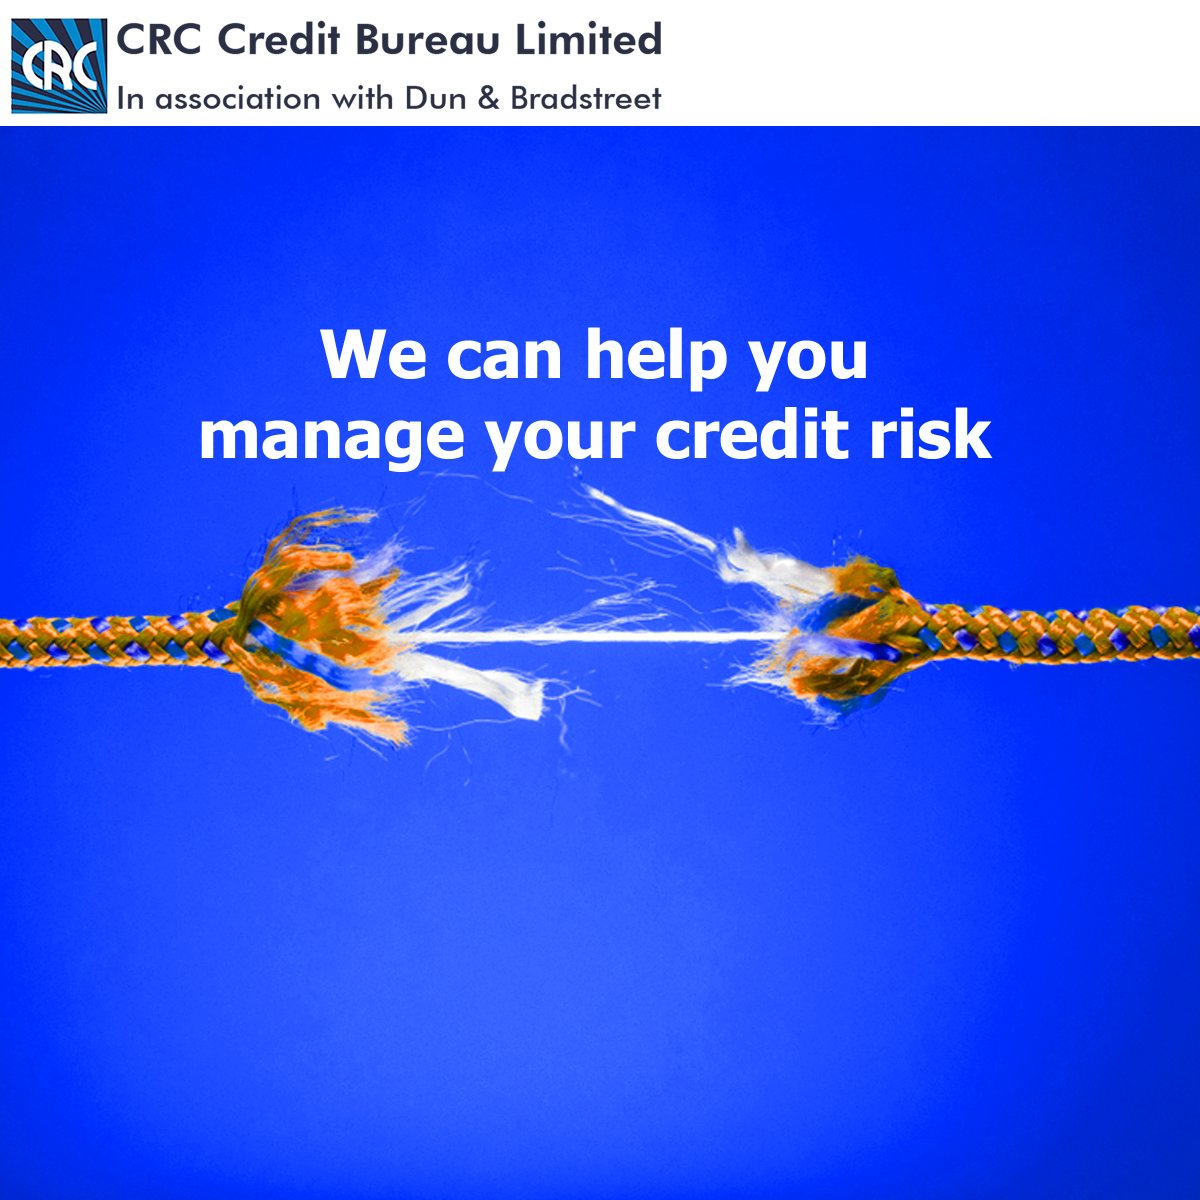 Manage your credit risk with our various products and services like the CRC Portfolio Monitoring Review or market your products and services with CRC Prospecta? Send us an email today at salesandmarketing@crccreditbureau.com  #MondayMotivation